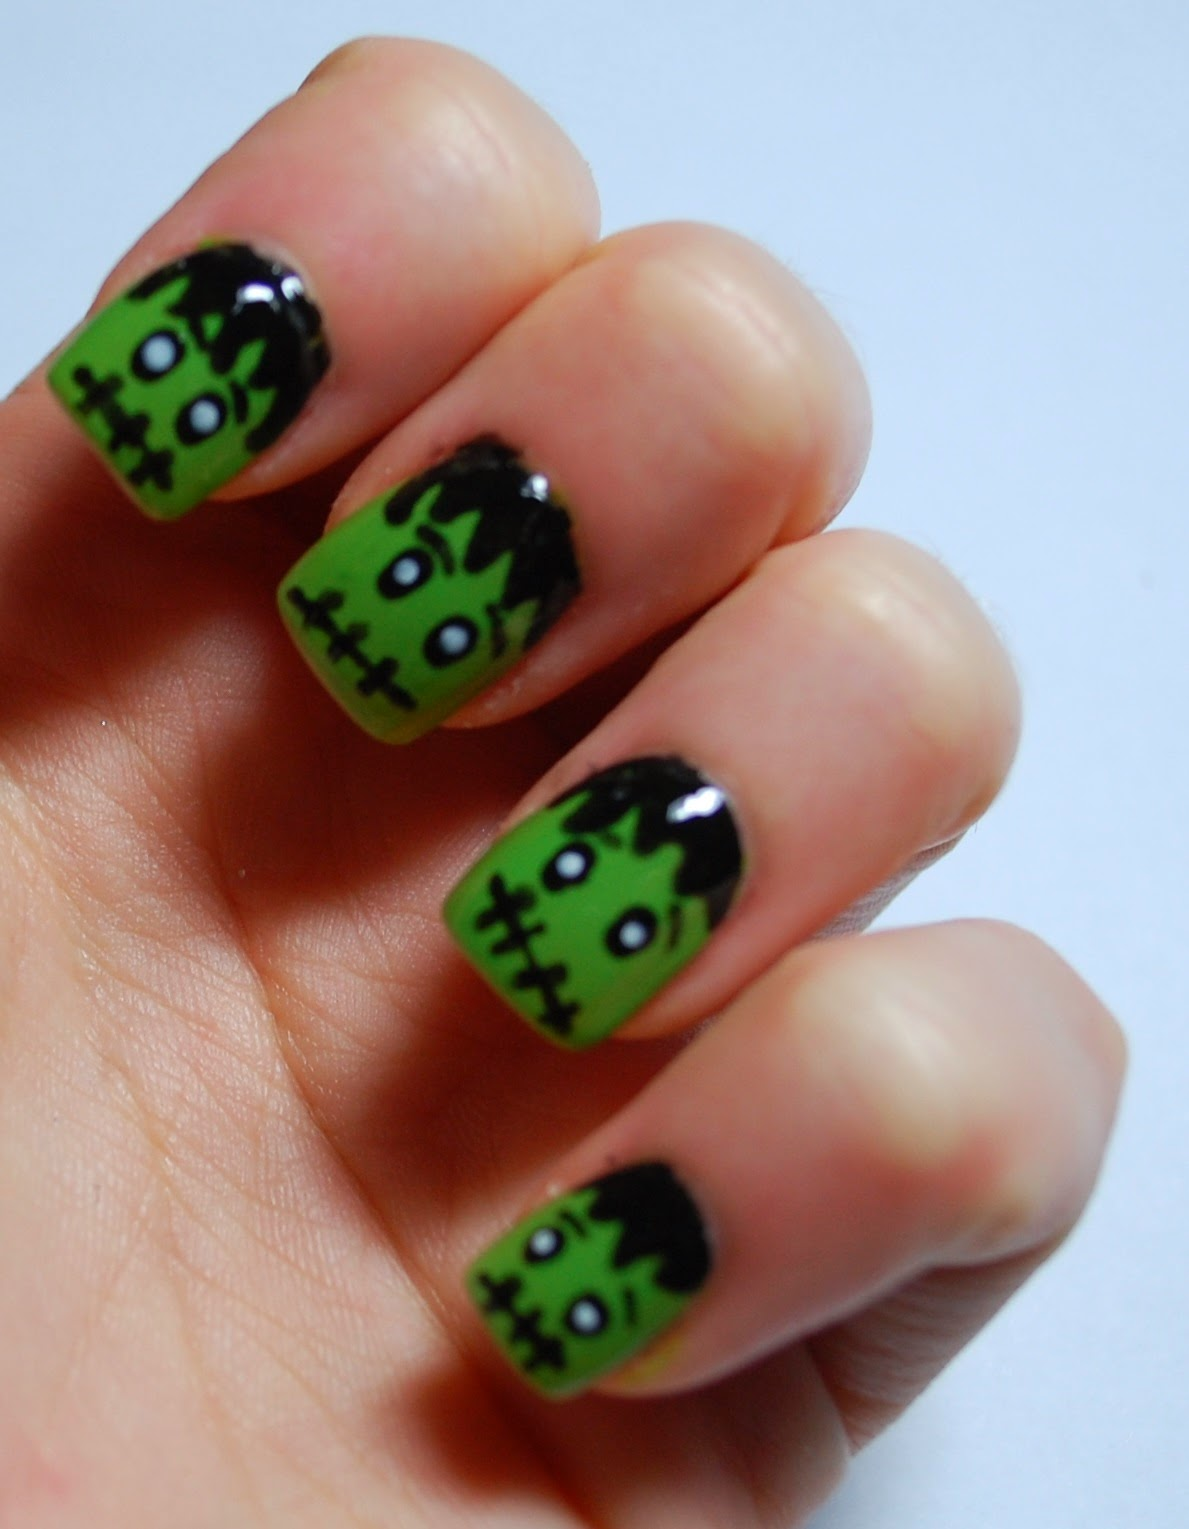 ... nail art designs recently so I thought I would give the Frankenstein  look a try. Its very easy to create, so if you want to find out how I  created the ... - In SAMazement: Halloween Frankenstein Nail Art